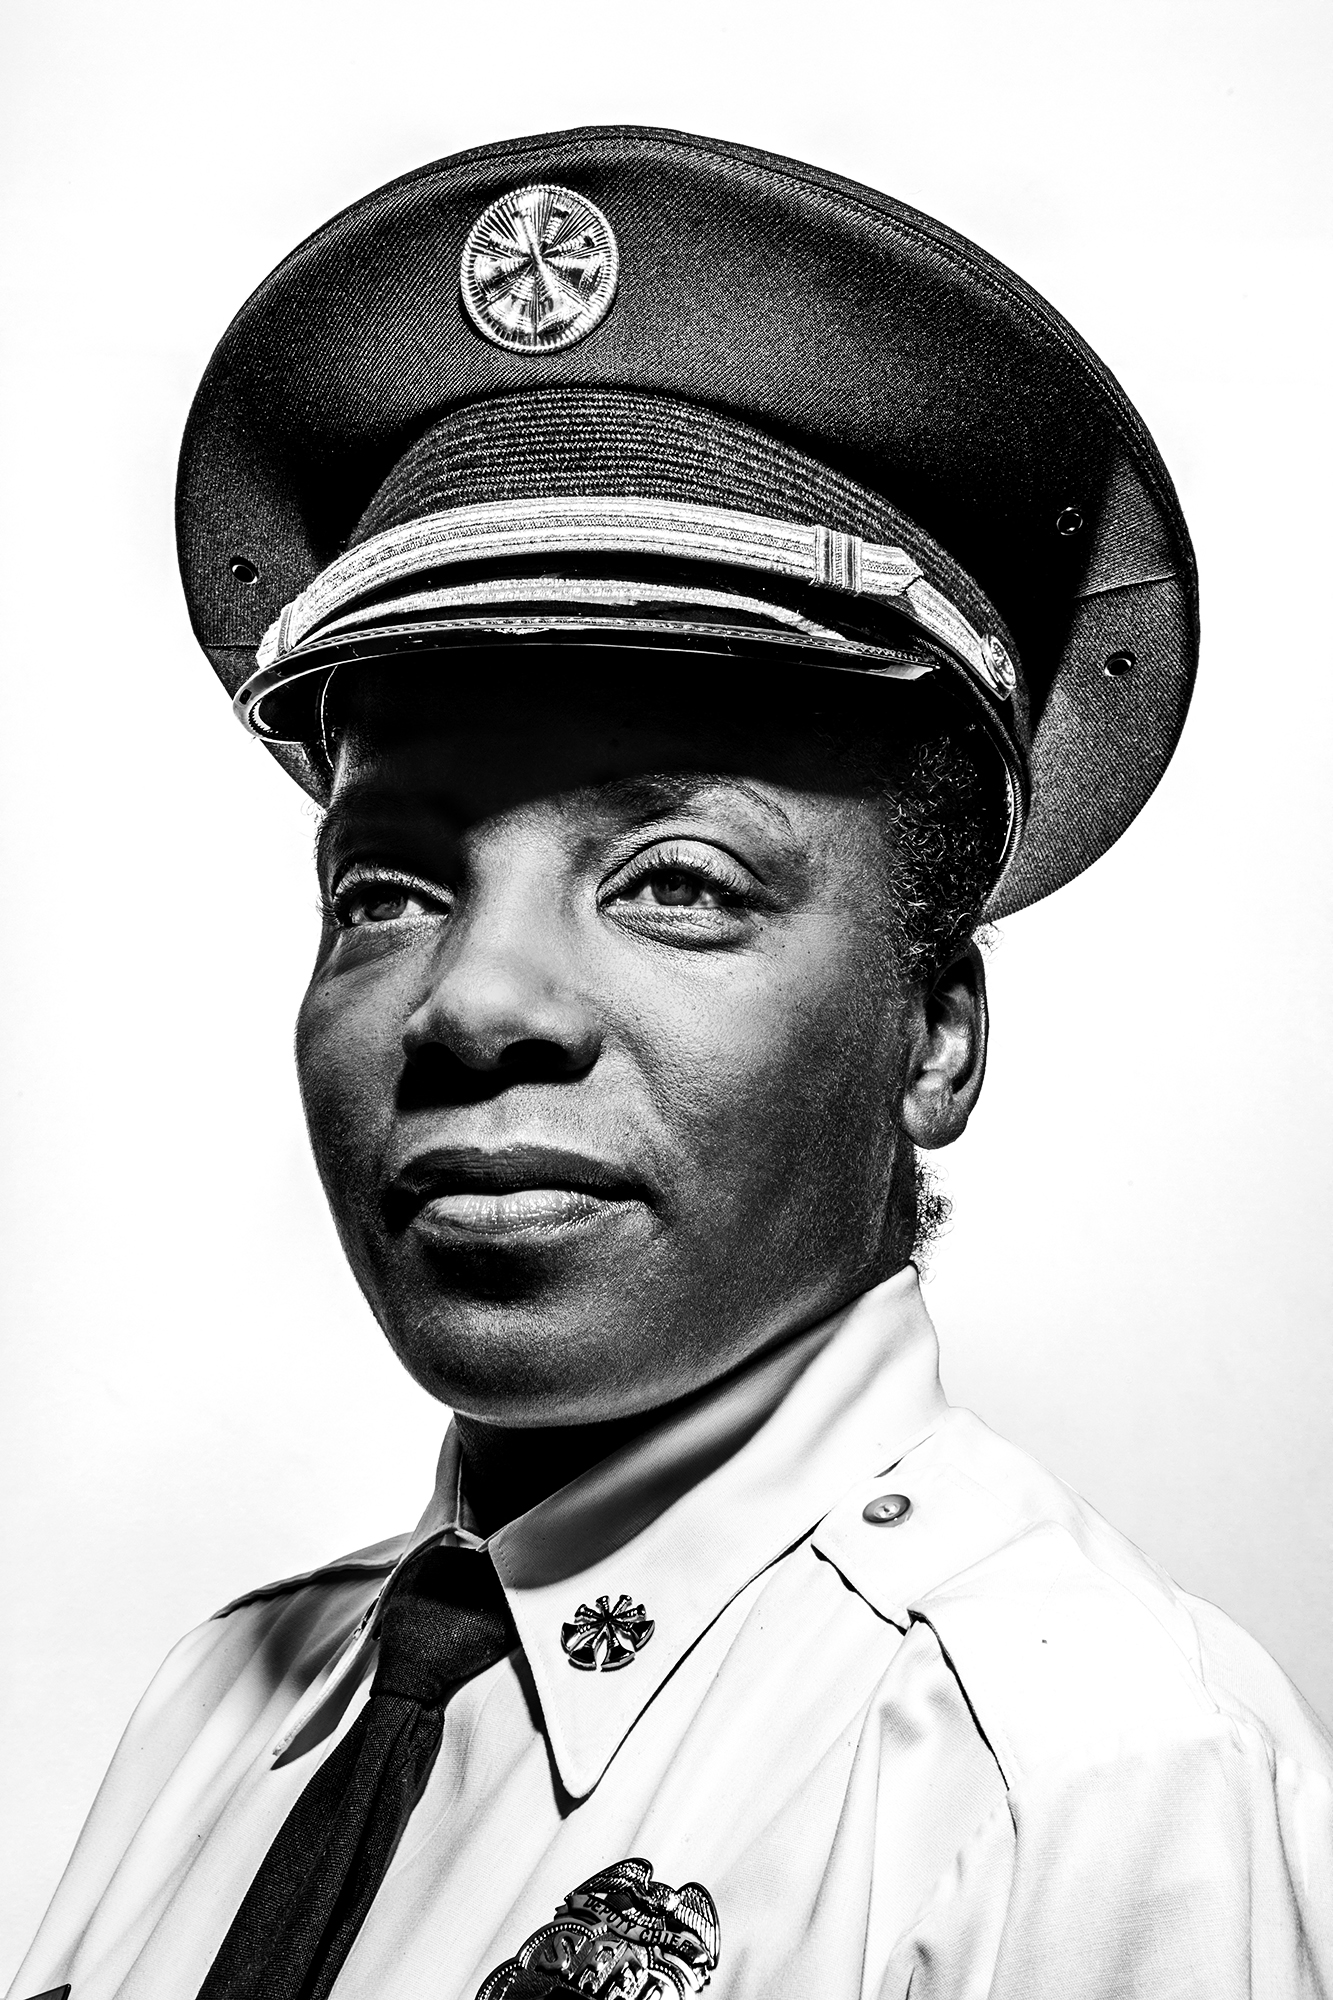 Raemona Williams - Assistant Deputy Chief of Administration, 27 years_LR.jpg